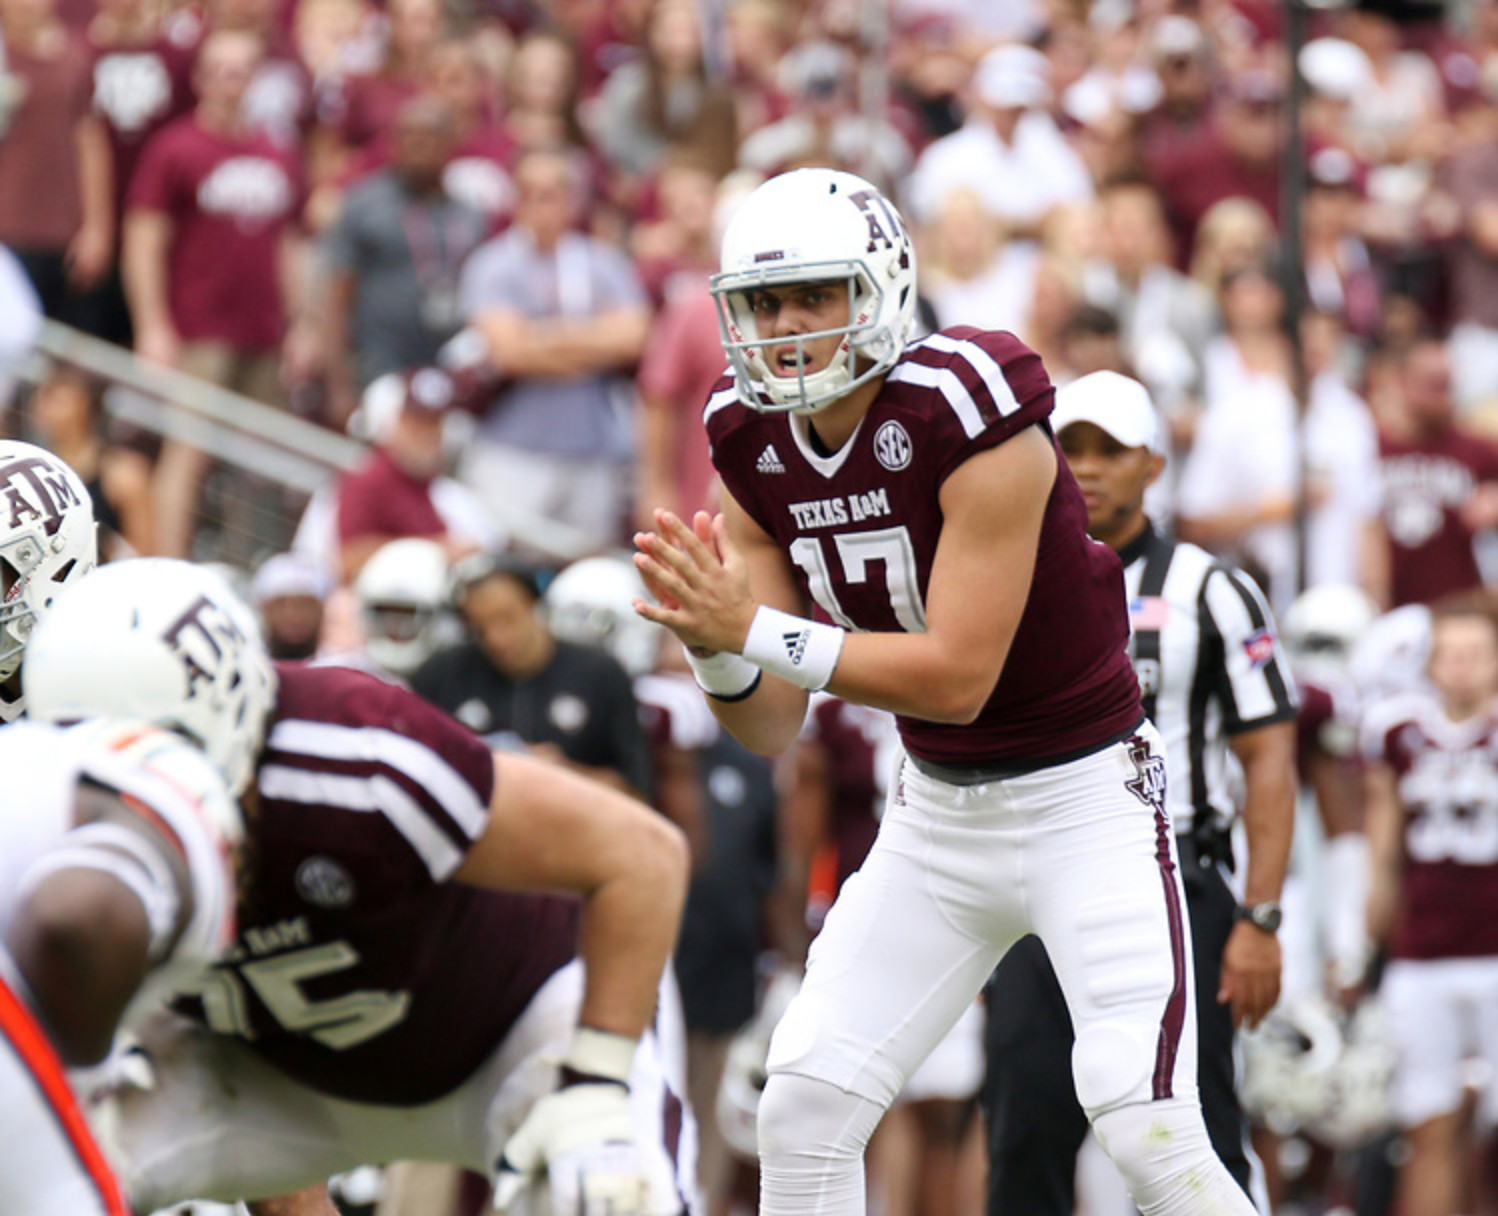 Nick Starkel became just the 12th Texas A&M quarterback to surpass the 400-yard passing barrier as the Aggies demolished New Mexico 55-14 on Saturday night.